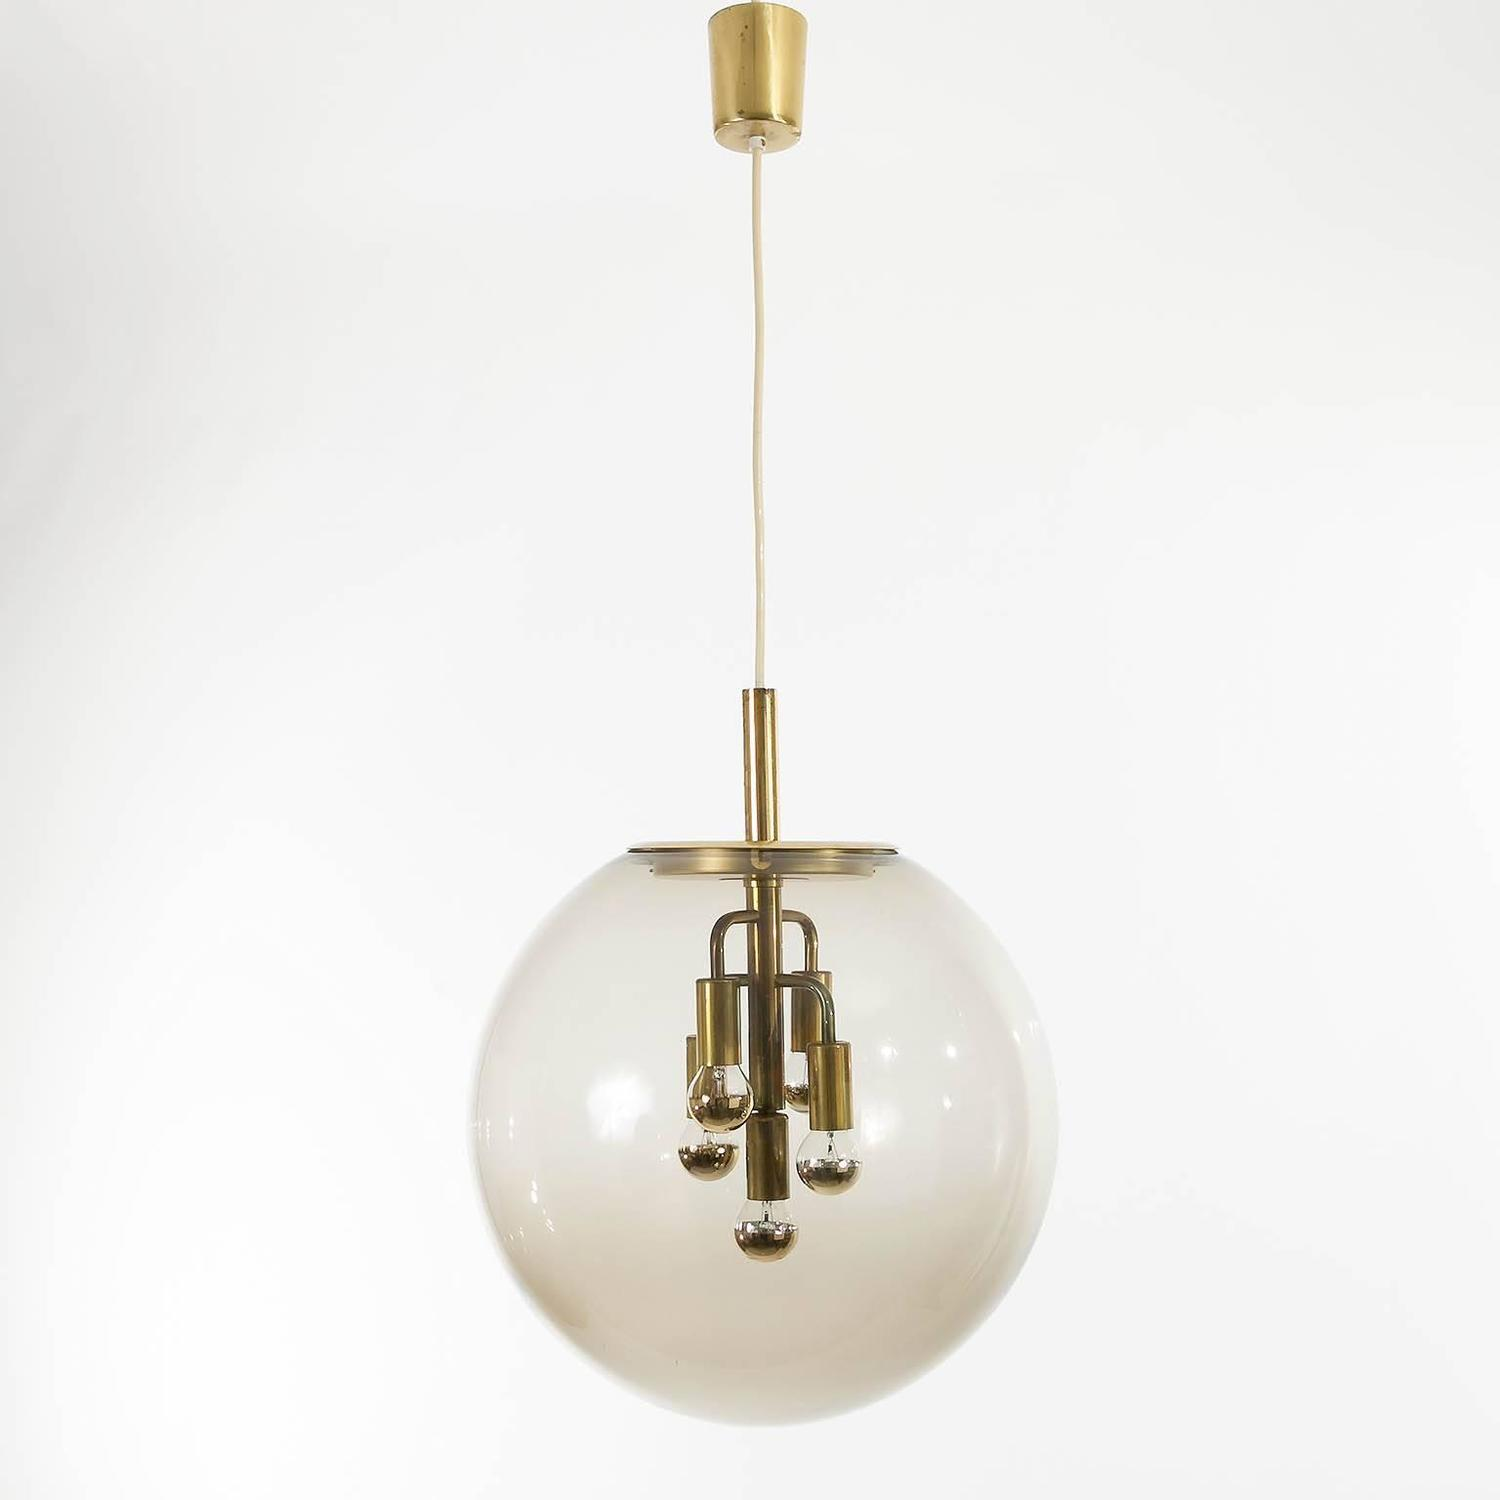 large limburg pendant light brass and amber glass globe 1960s at 1stdibs. Black Bedroom Furniture Sets. Home Design Ideas